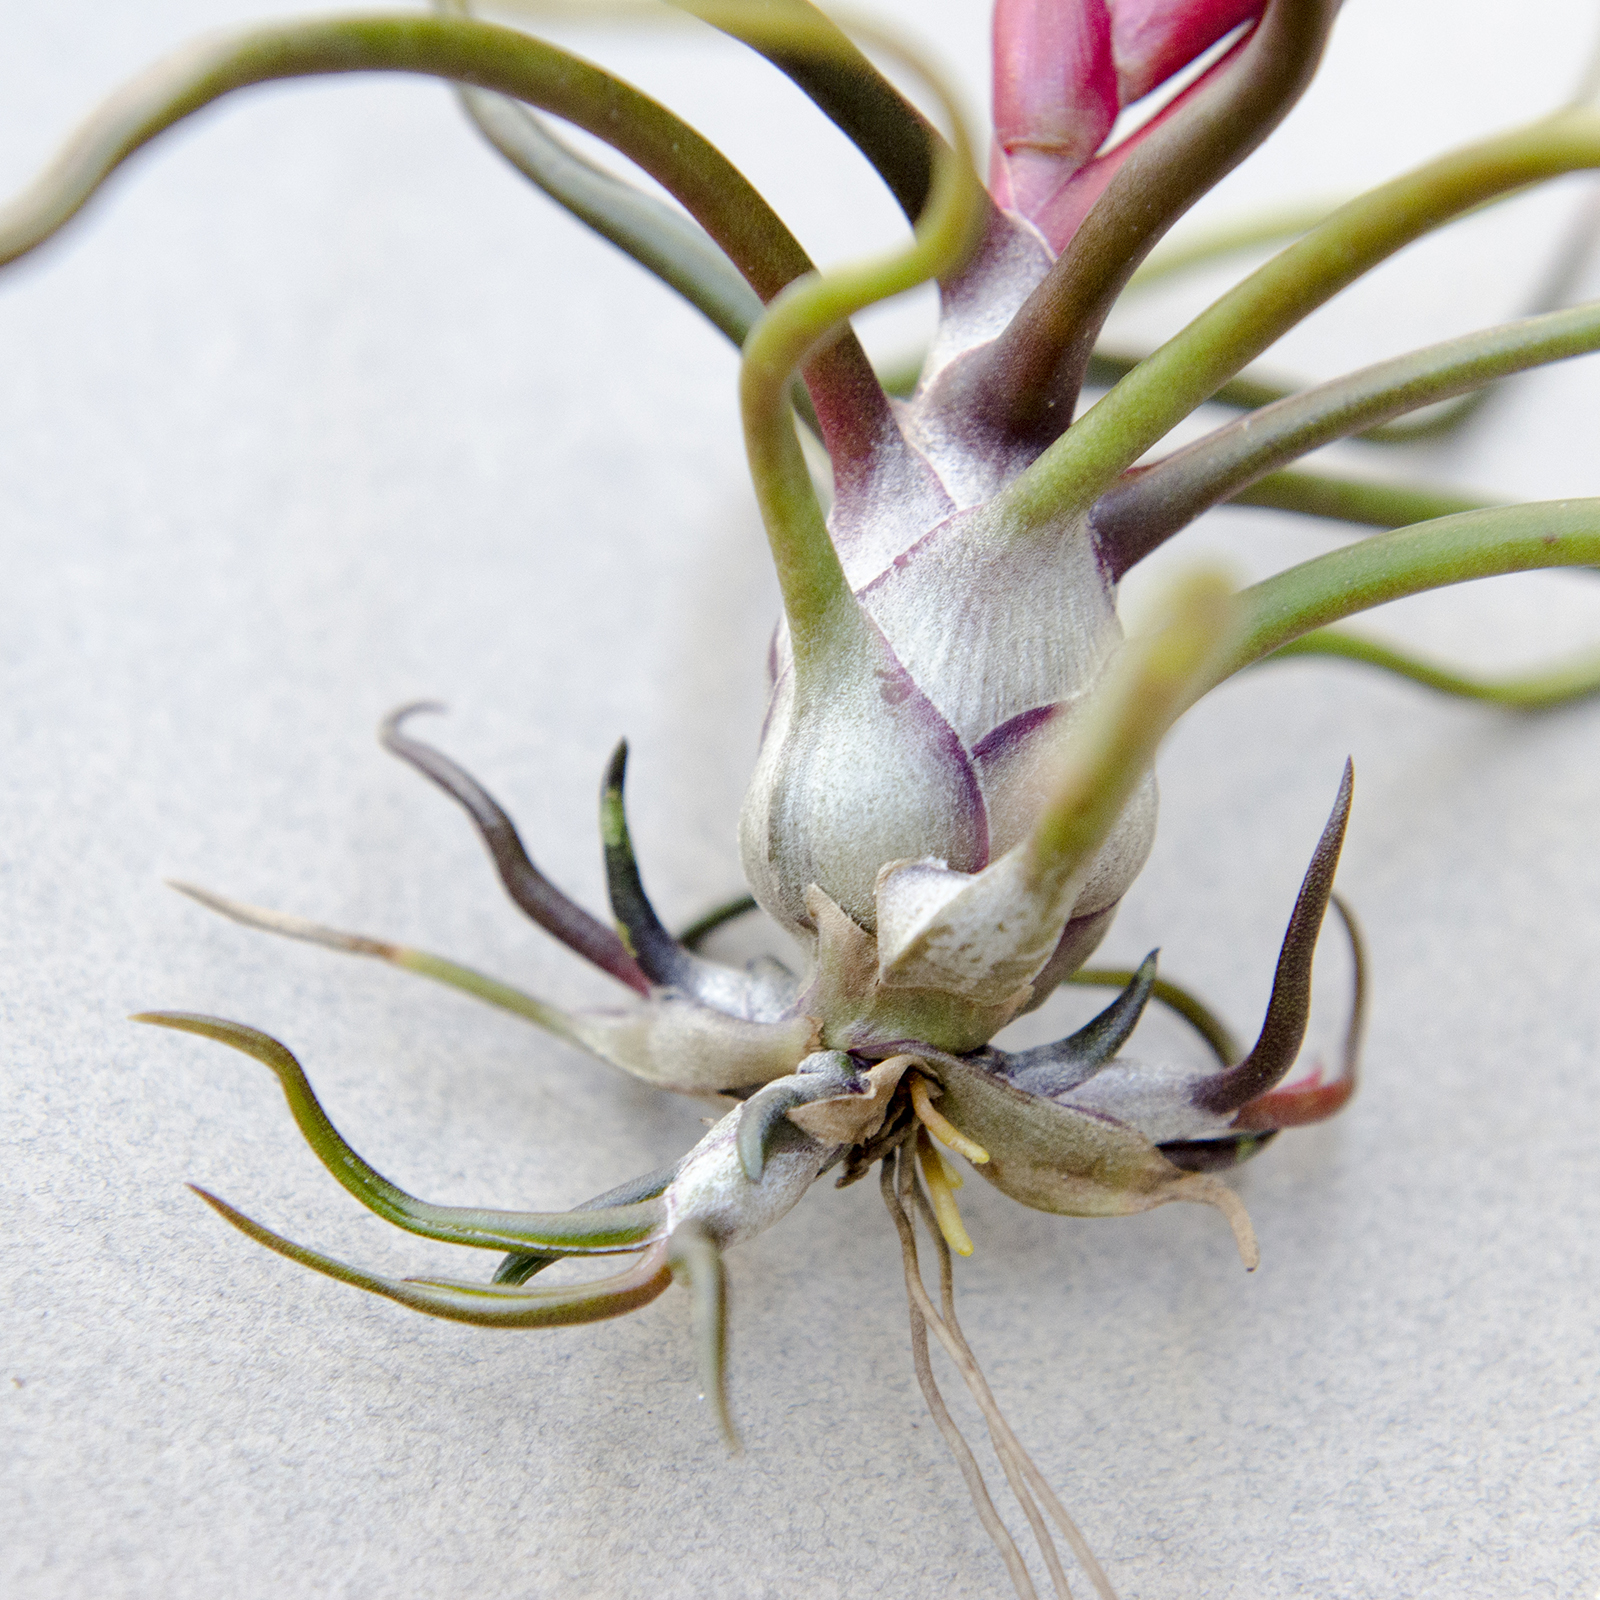 T. Bulbosa air plant producing three pups and flowering simultaneously.